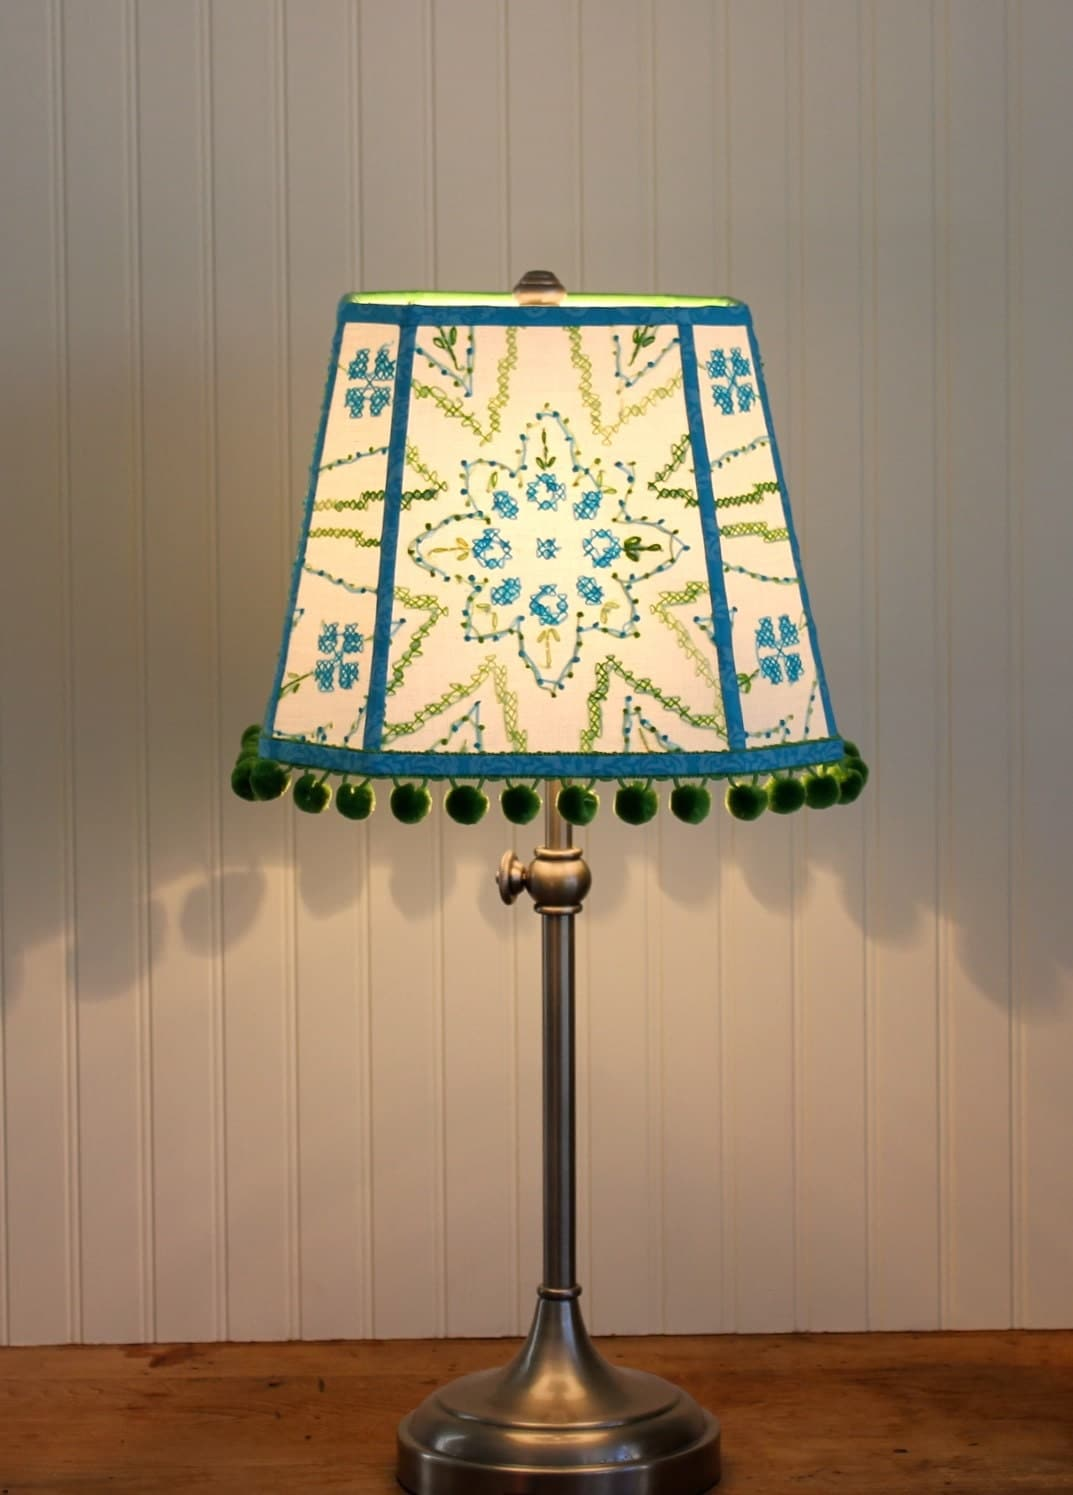 sale lamp shade bohemian embroidered lamp shade by sassyshades. Black Bedroom Furniture Sets. Home Design Ideas